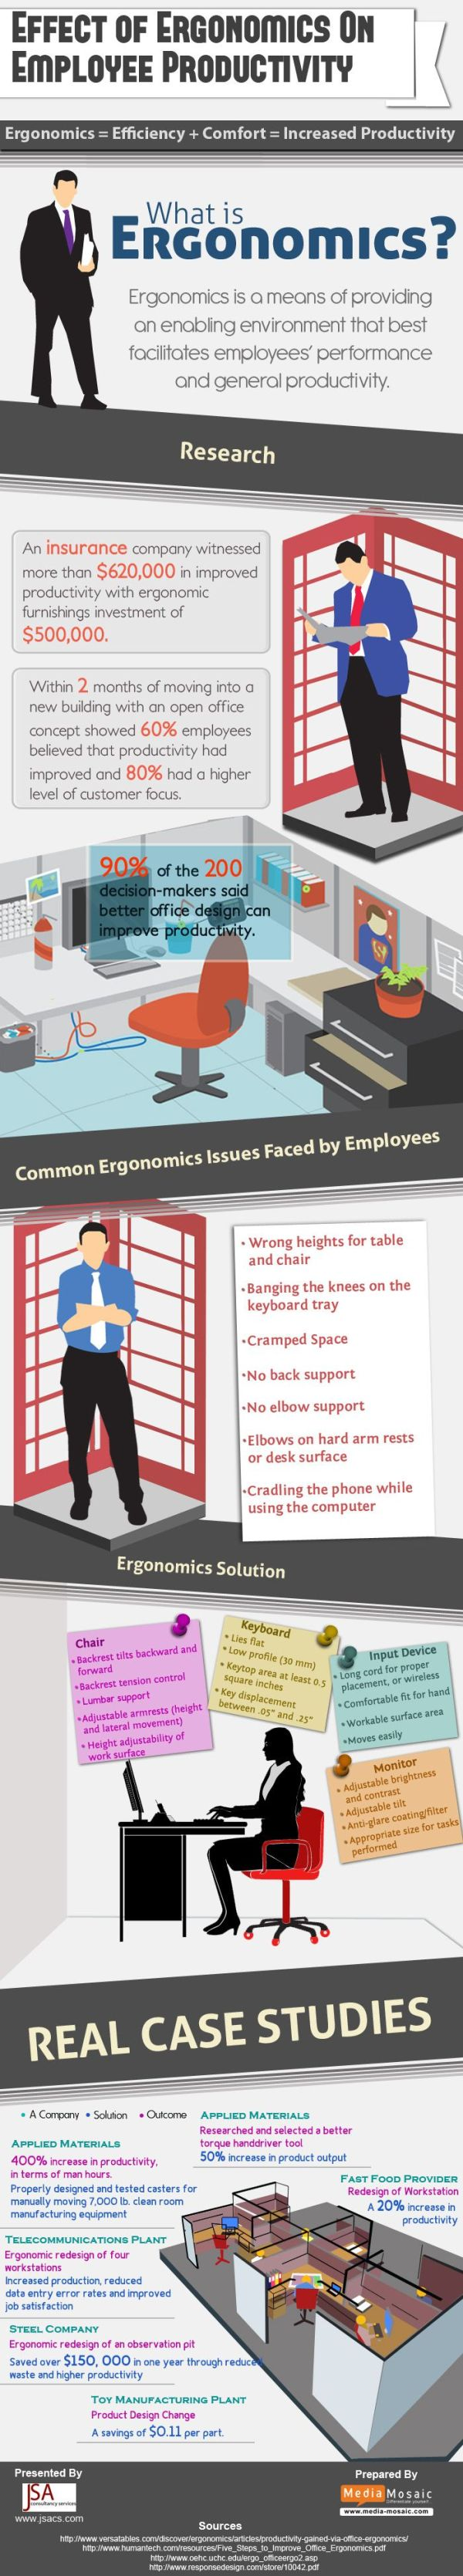 ergonomics effect on employee productivity